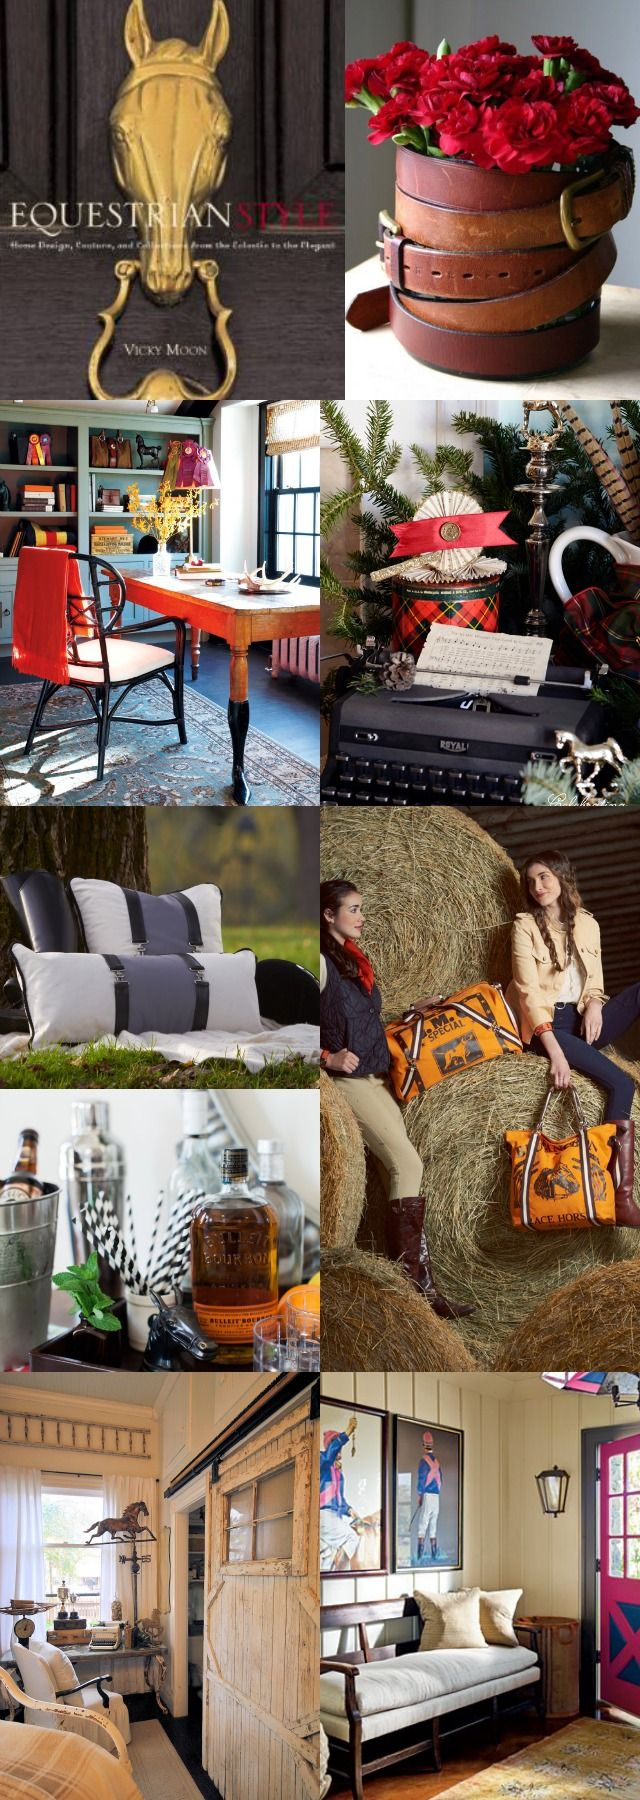 Equestrian Style Decorating Fashion Inspiration